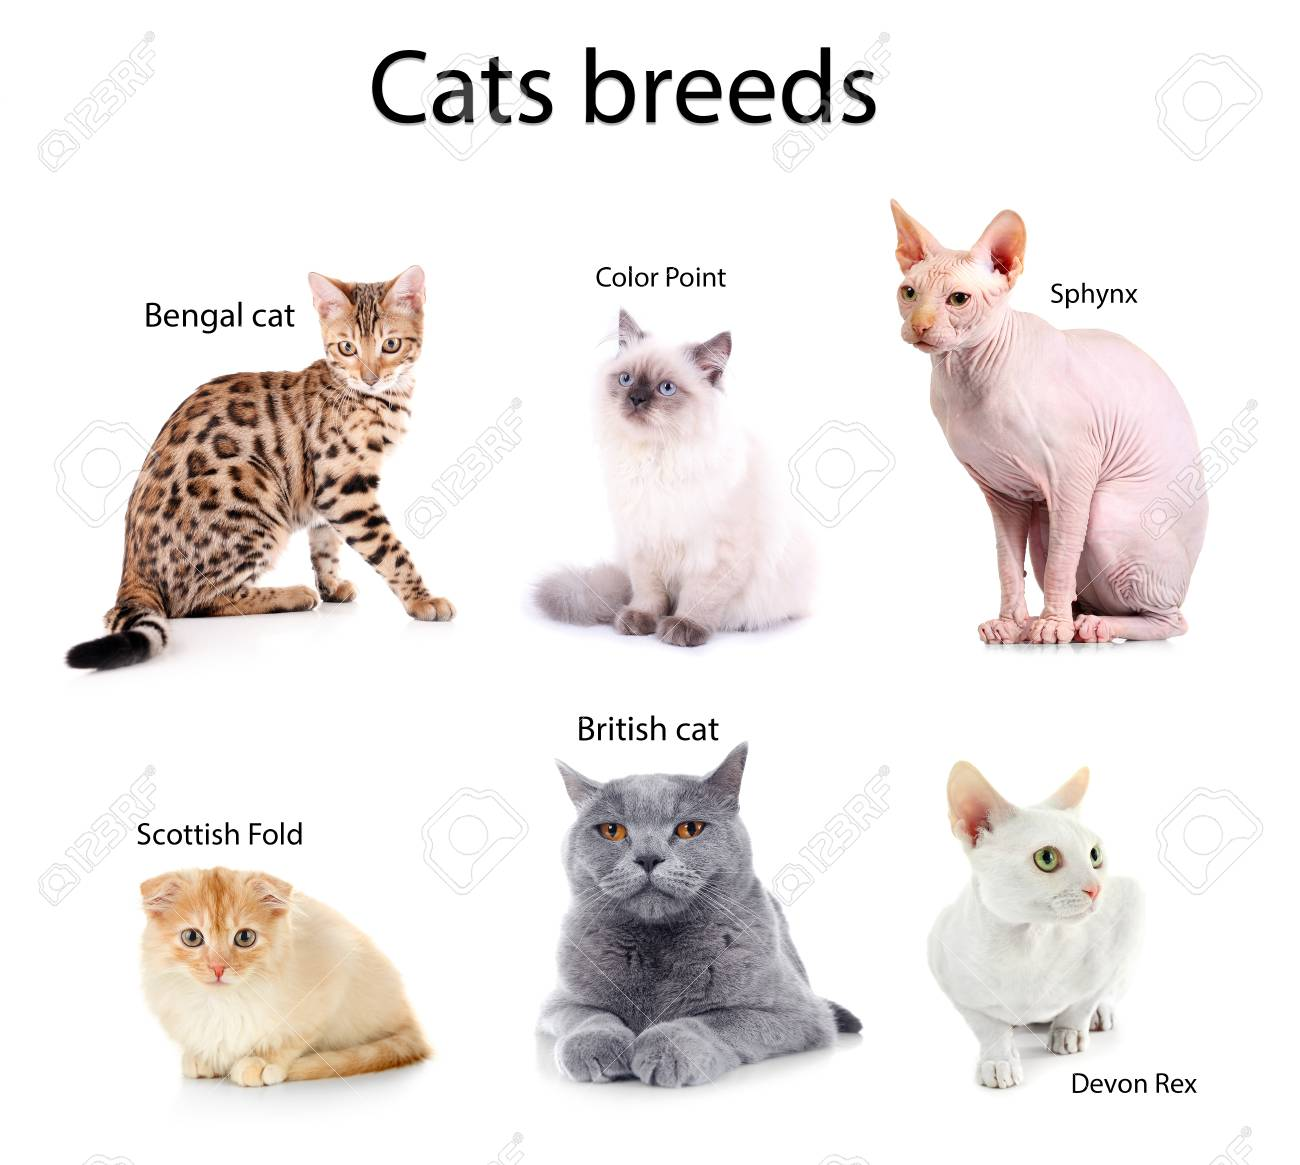 Beautiful Cats With Names Of Breeds On White Background Stock Photo Picture And Royalty Free Image Image 78338382